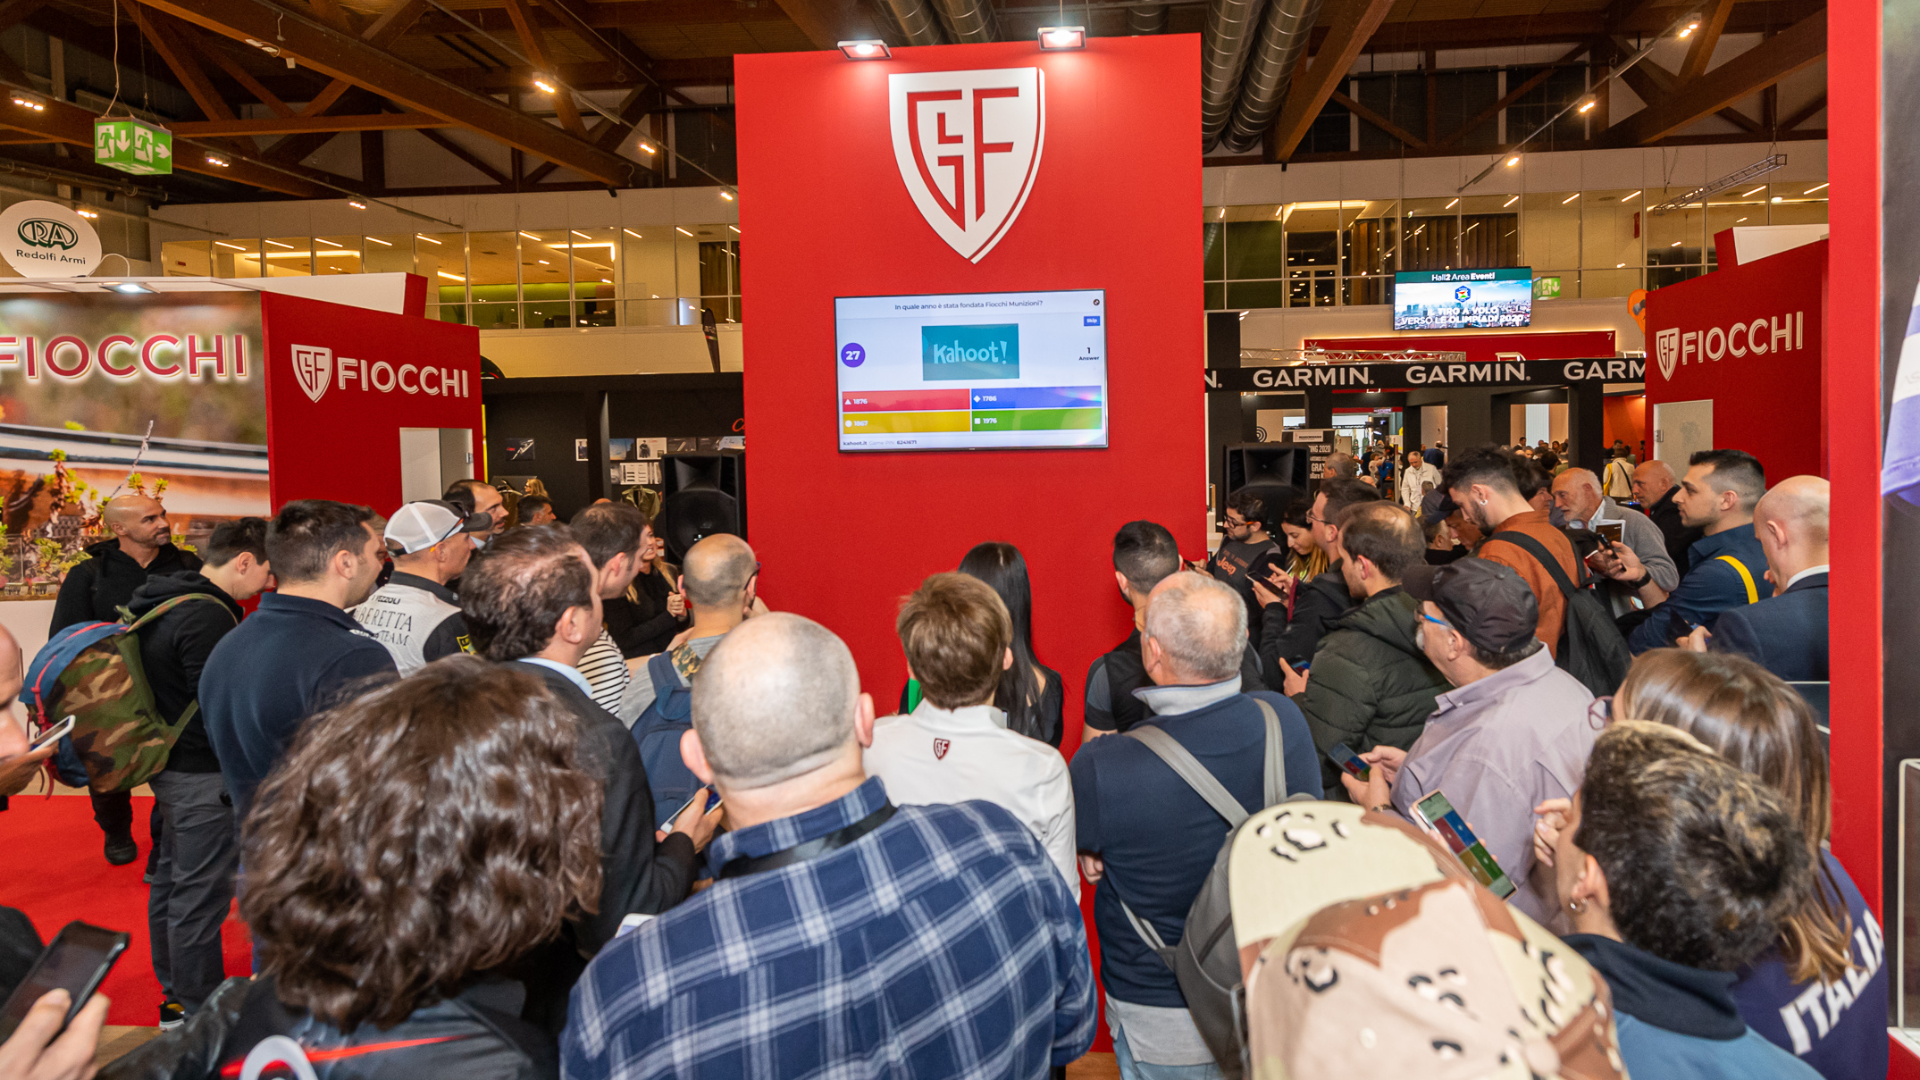 HIT SHOW: THOUSANDS OF VISITORS AT FIOCCHI'S STAND